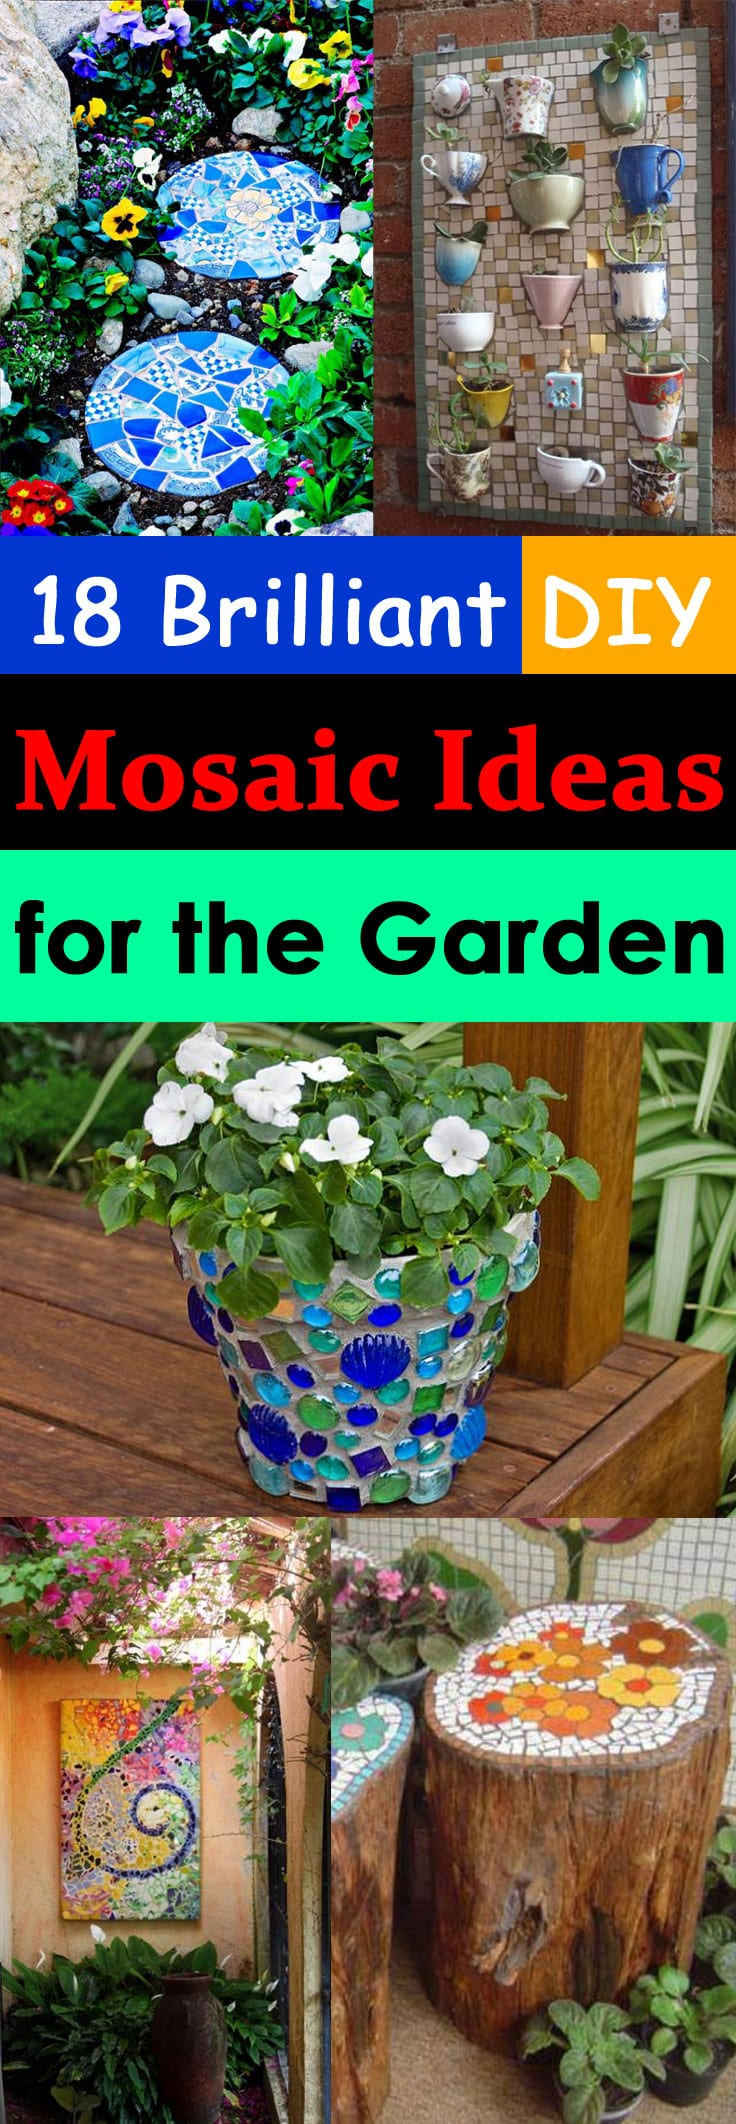 18 Brilliant DIY Mosaic Ideas For Garden | Mosaic Craft | Balcony ...